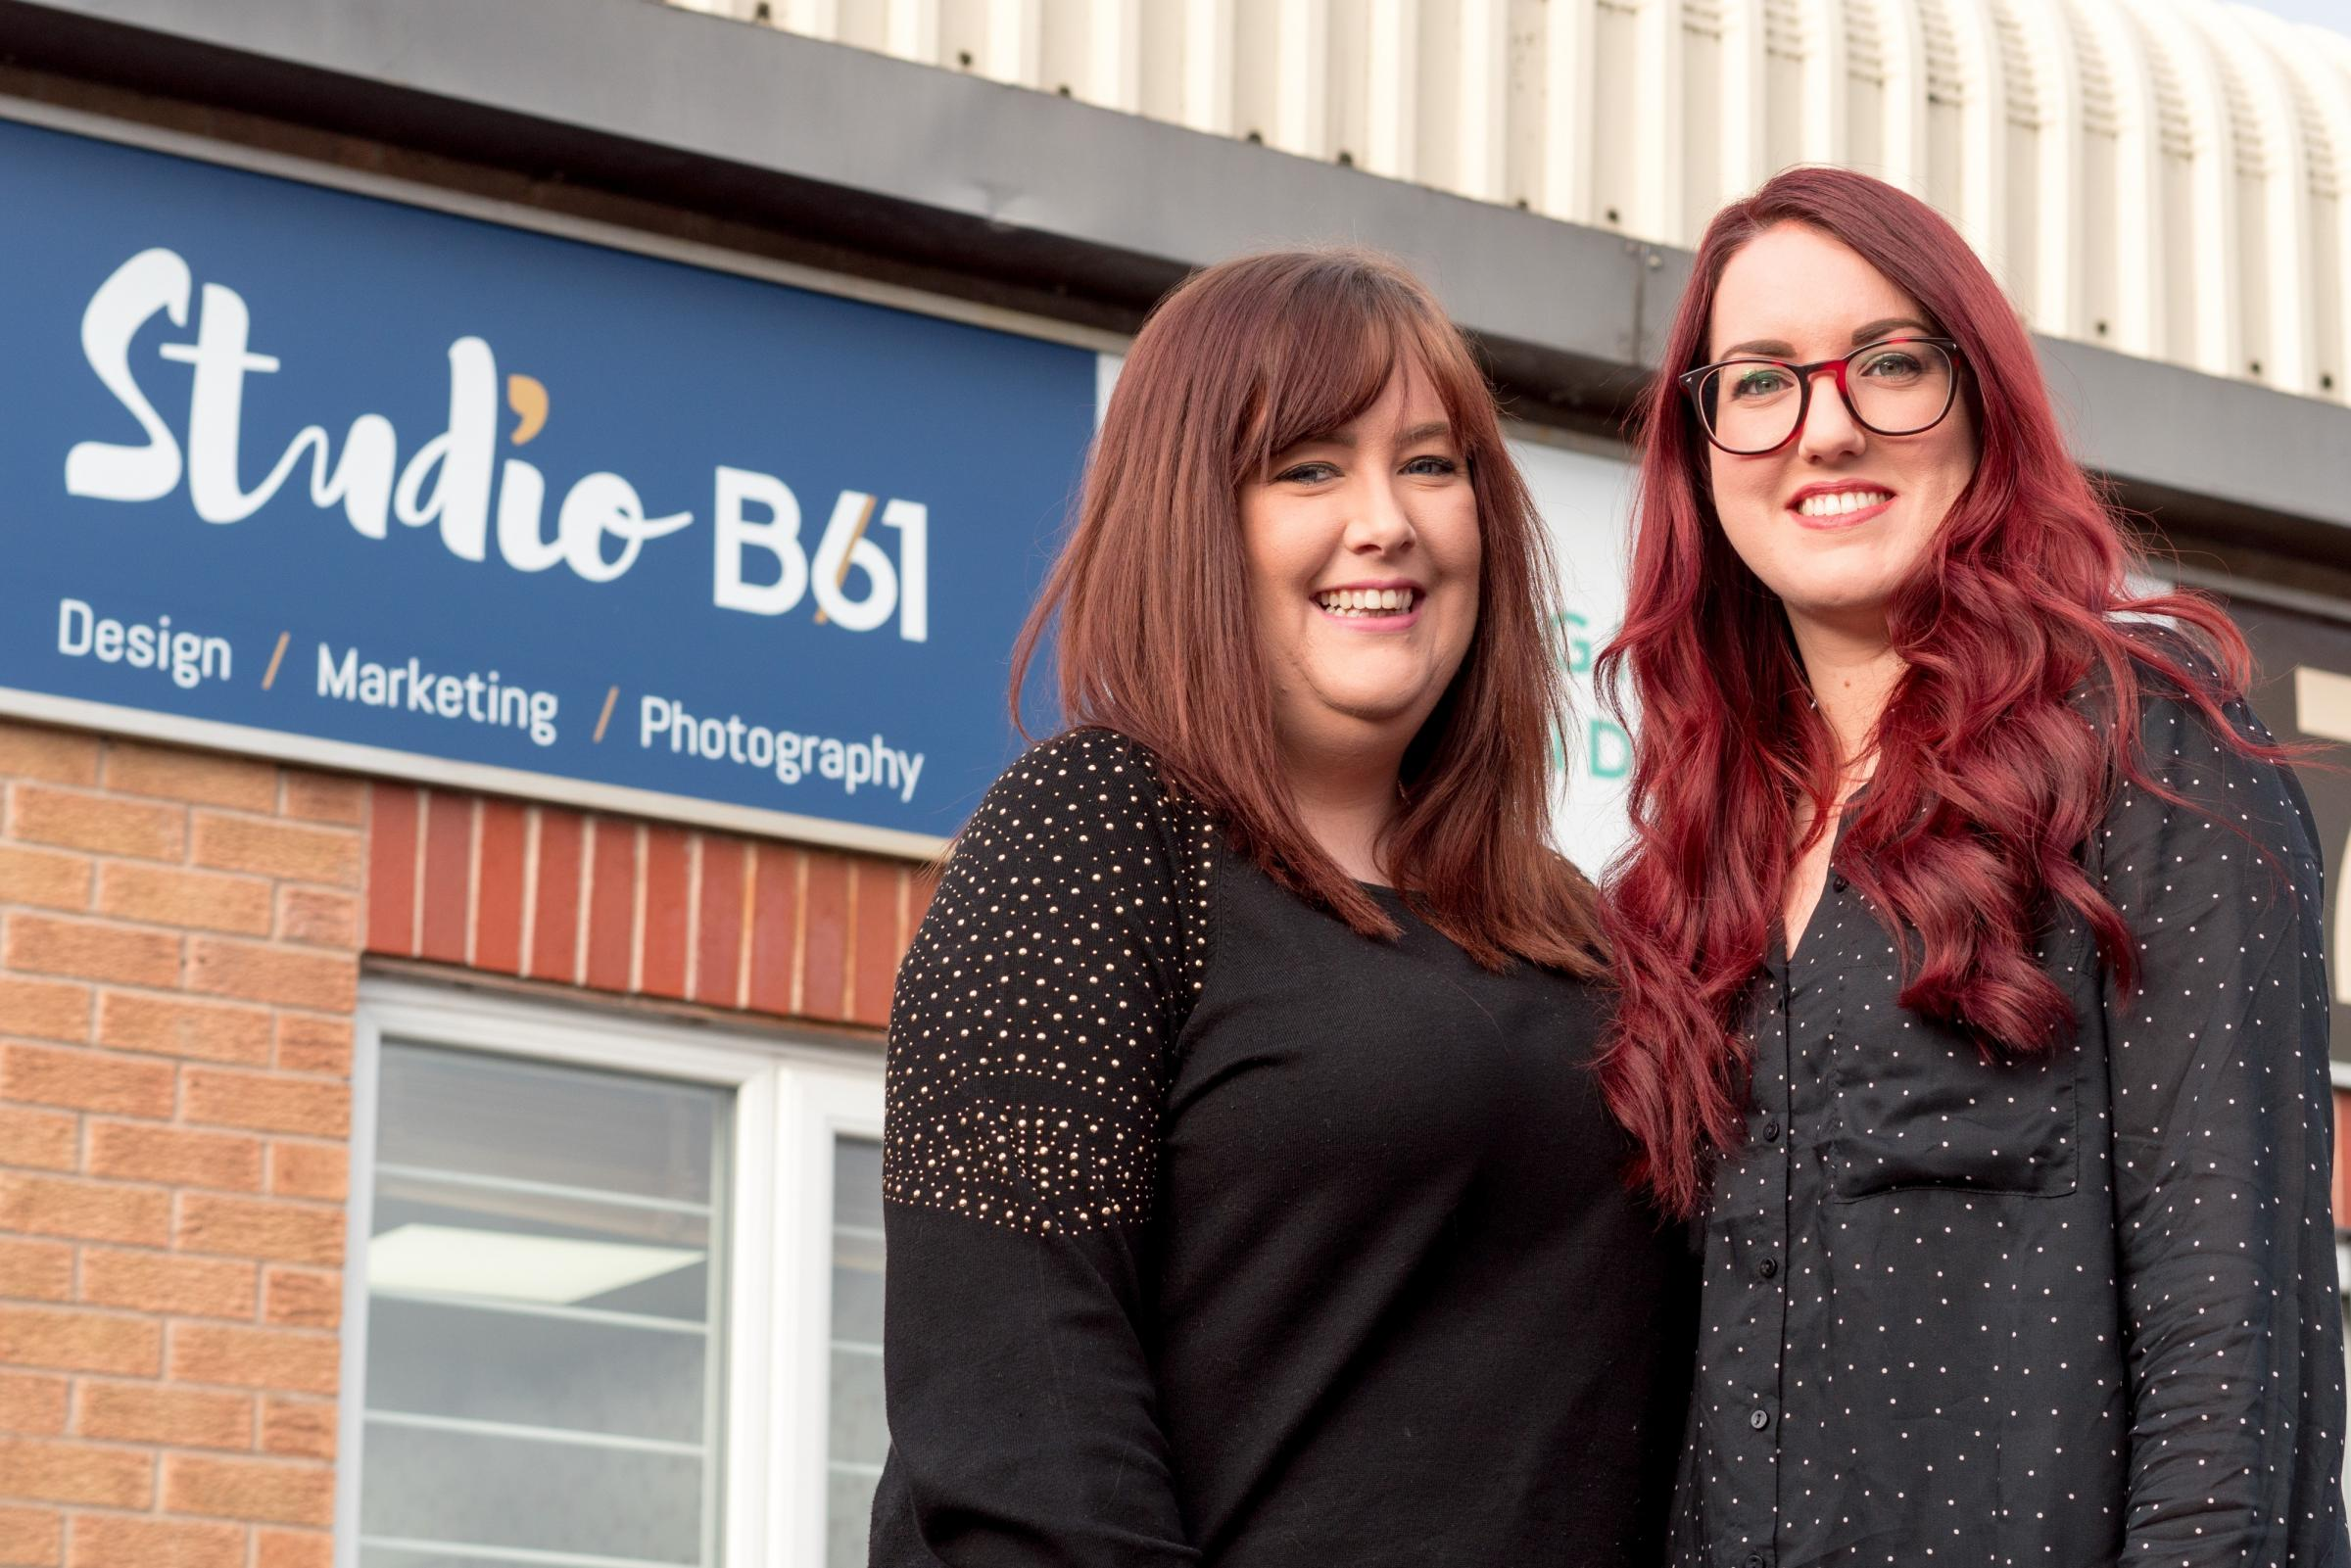 BUSINESS BOOST: Hannah Dudley and Sian Conway, co-directors of the new Studio B61 marketing agency, were given a boost by the Enterprising Worcestershire programme. Hamish Gill